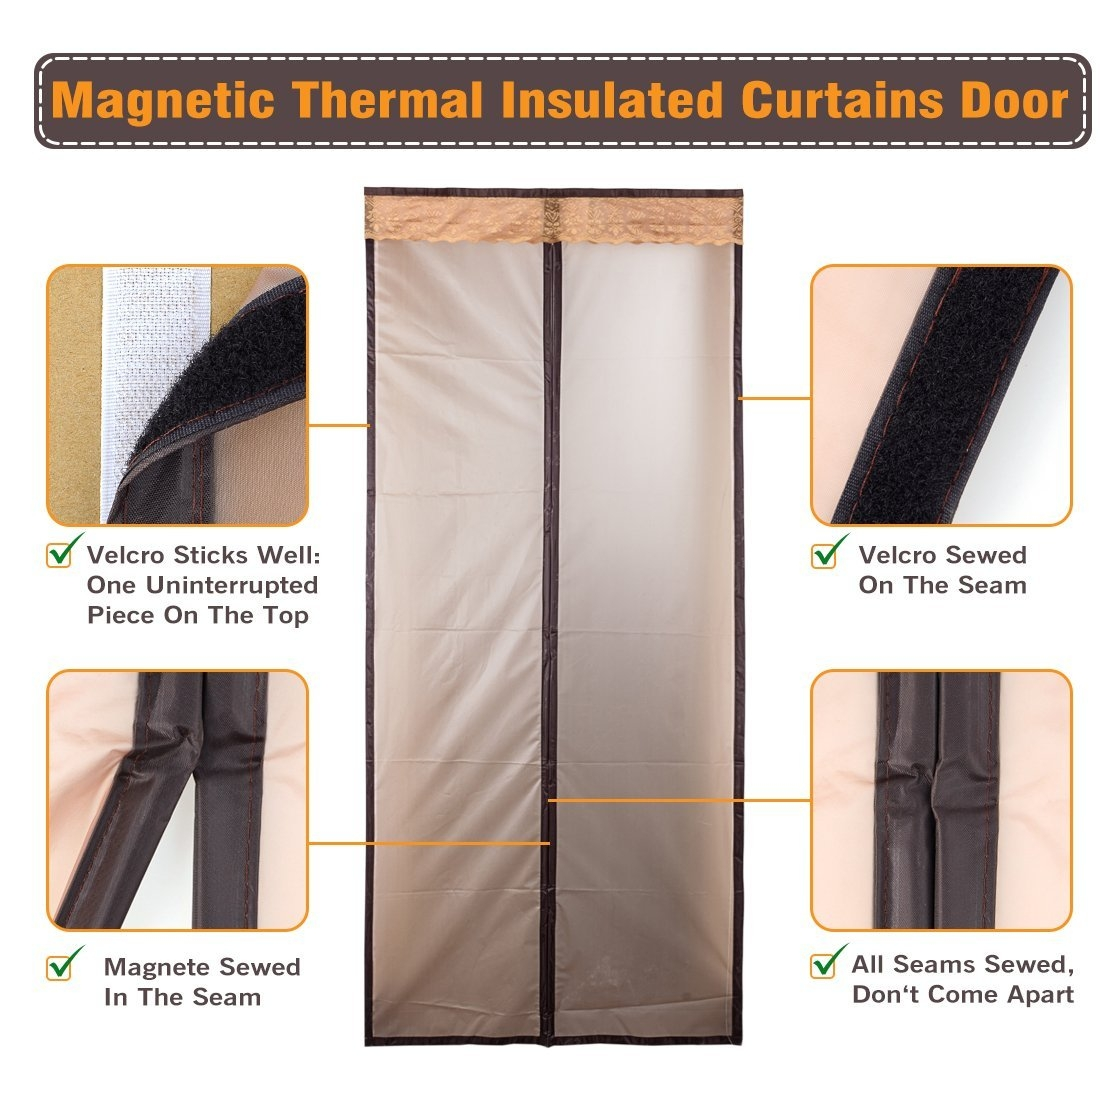 Magnetic Thermal Insulated Door Curtain Enjoy Your Cool Summer And Intended For Thermal Door Curtain (View 15 of 15)